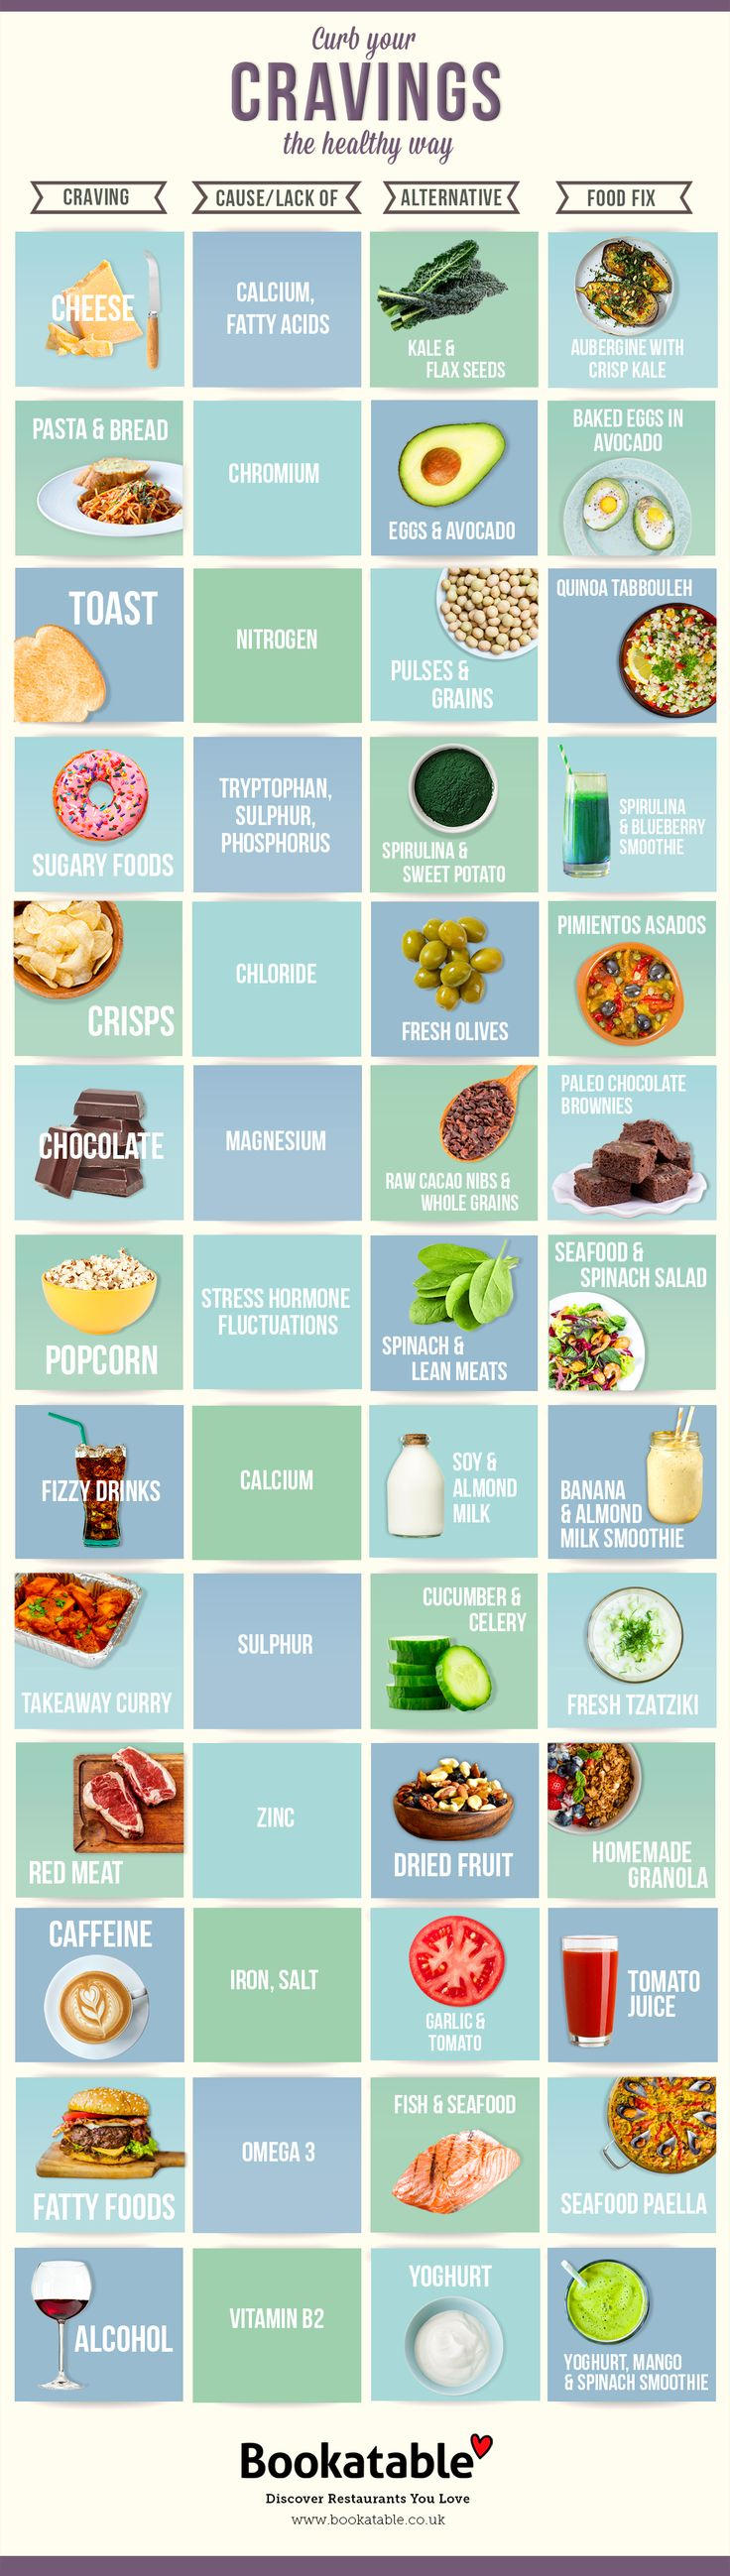 Curb Your Cravings the Healthy Way #Infographic #Food #Health Holy Land Designs GT www.holylanddesigns.com www.etsy.com/shop/HolyLandDesignsGT